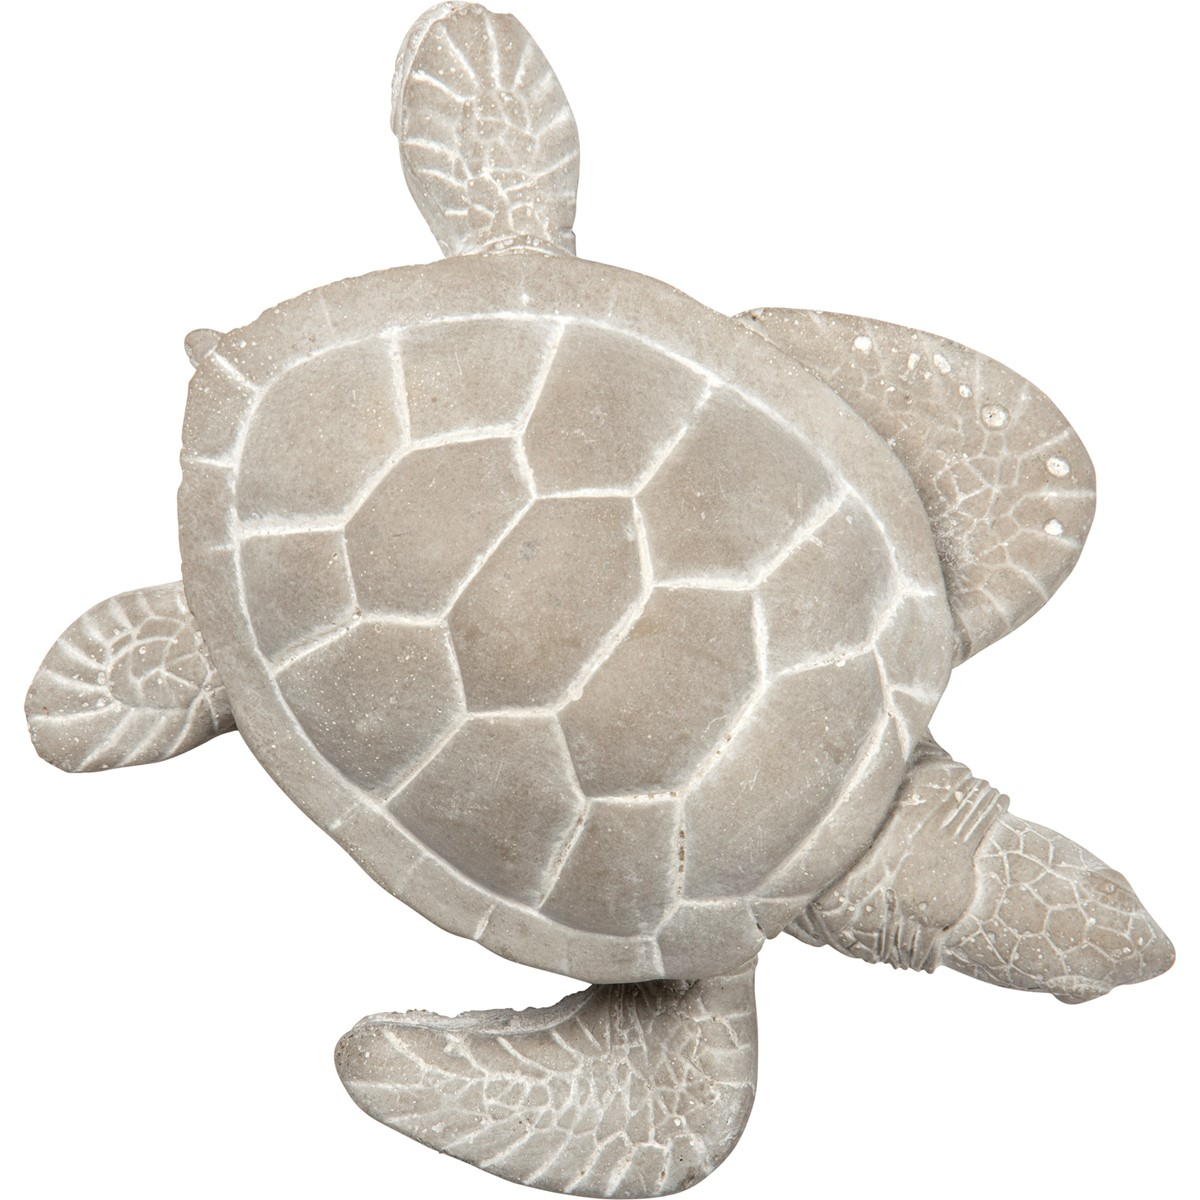 "Cement Turtle - 5.25"" x 6"" x 2.25"" - Cement"